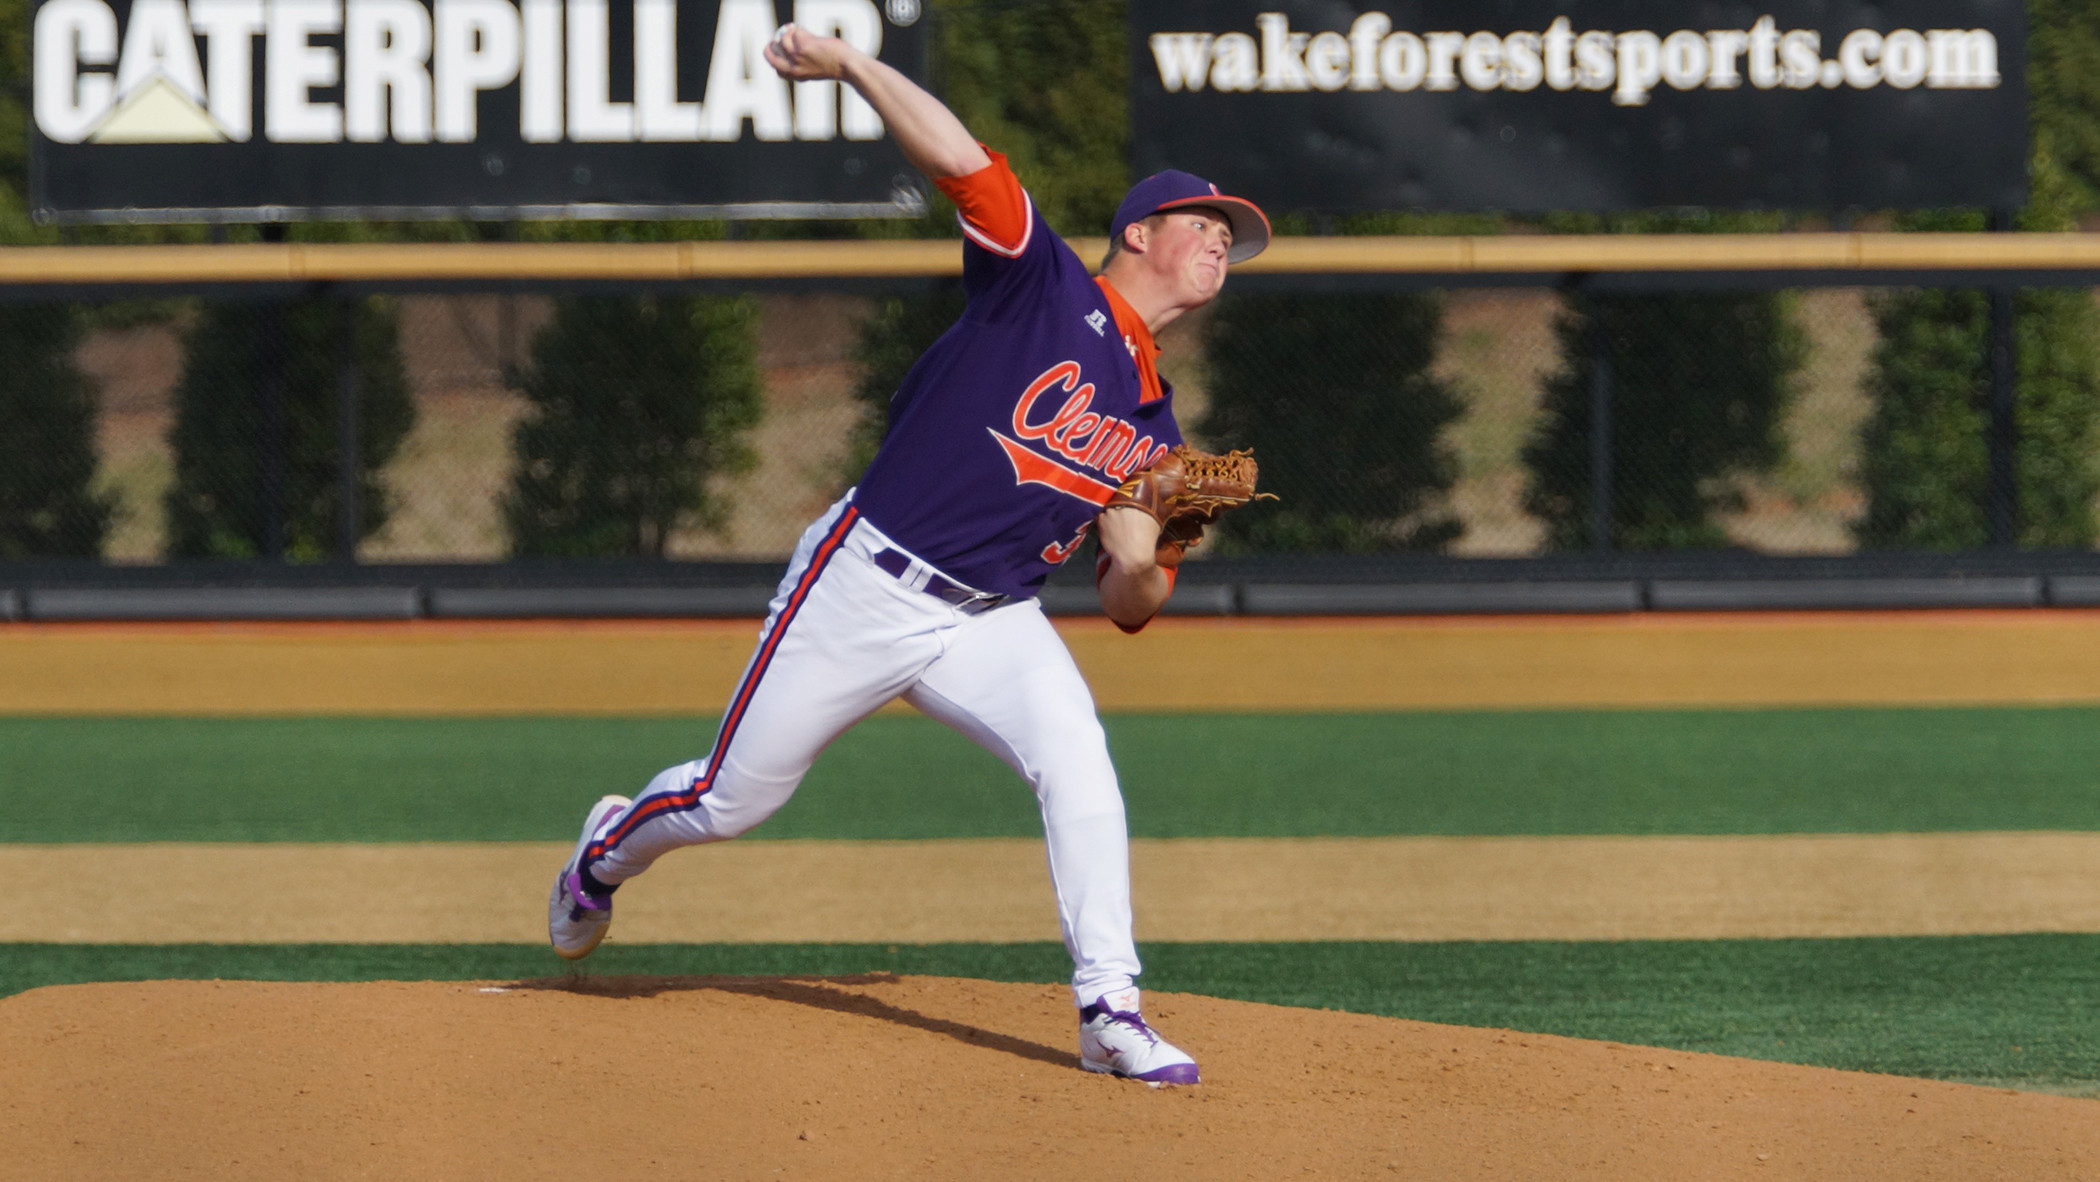 No. 14 Tigers Defeat Demon Deacons 7-4 in Game 2 of DH Saturday